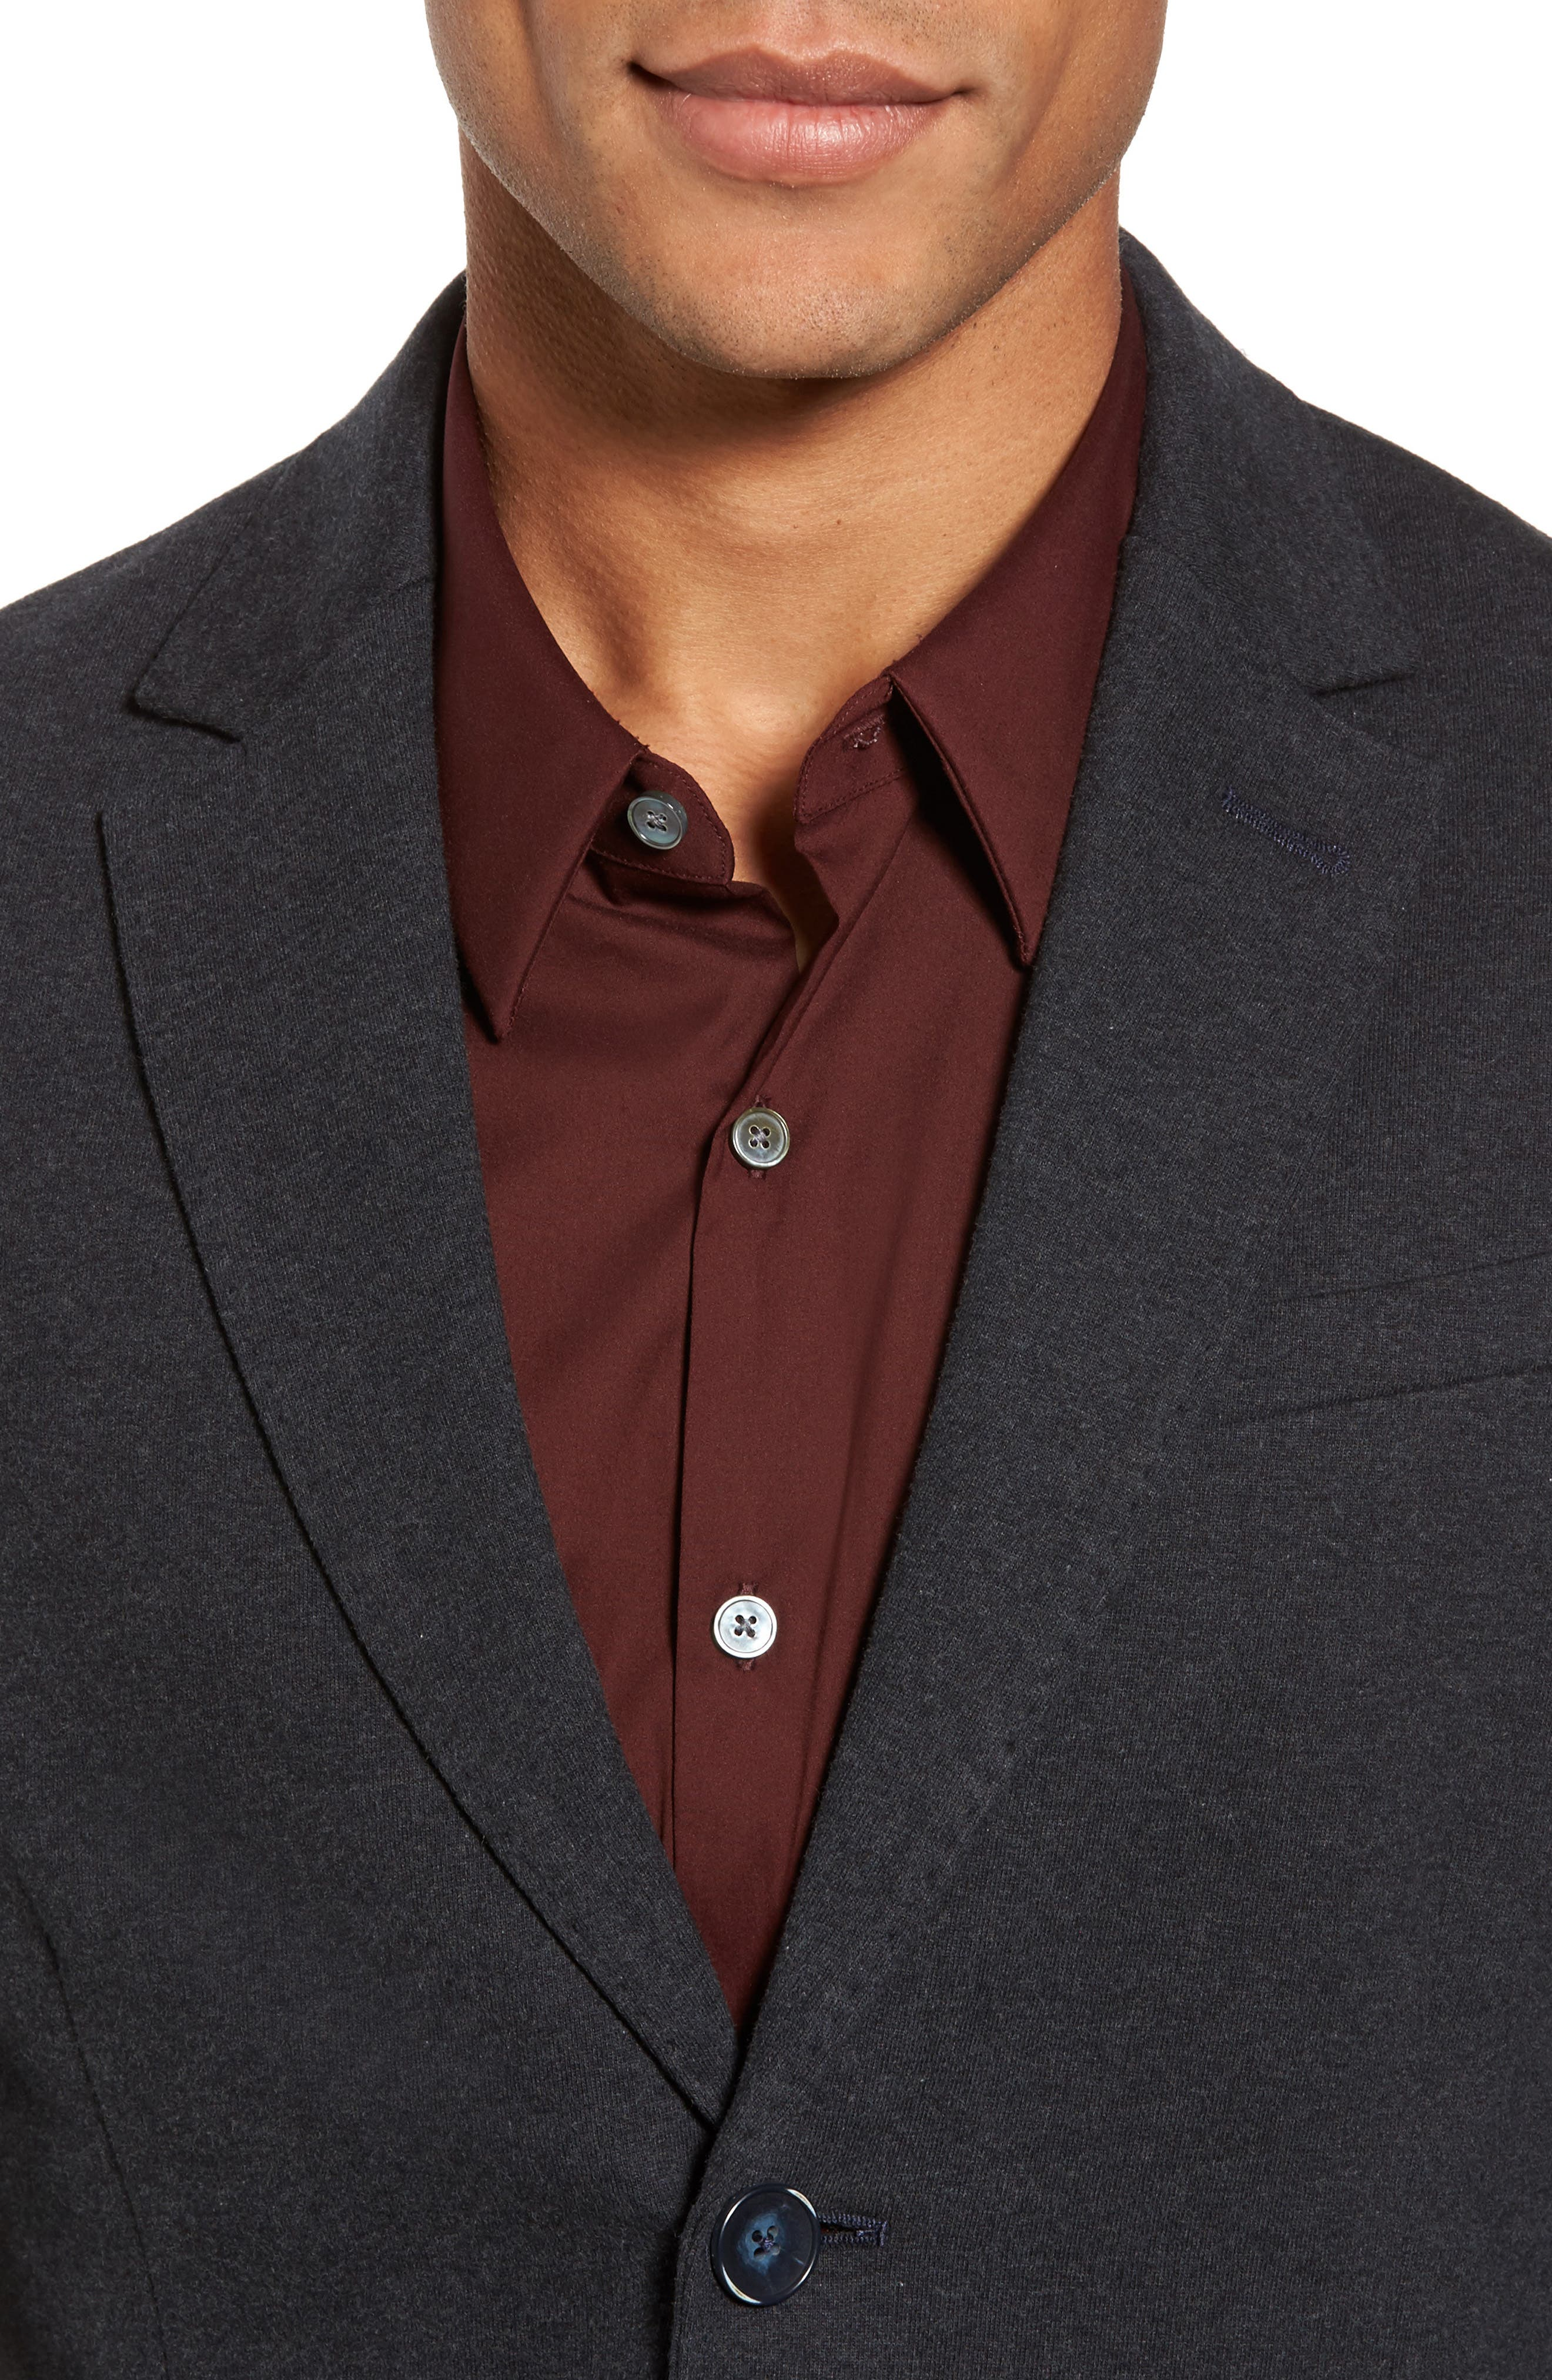 Tailored Jersey Jacket,                             Alternate thumbnail 4, color,